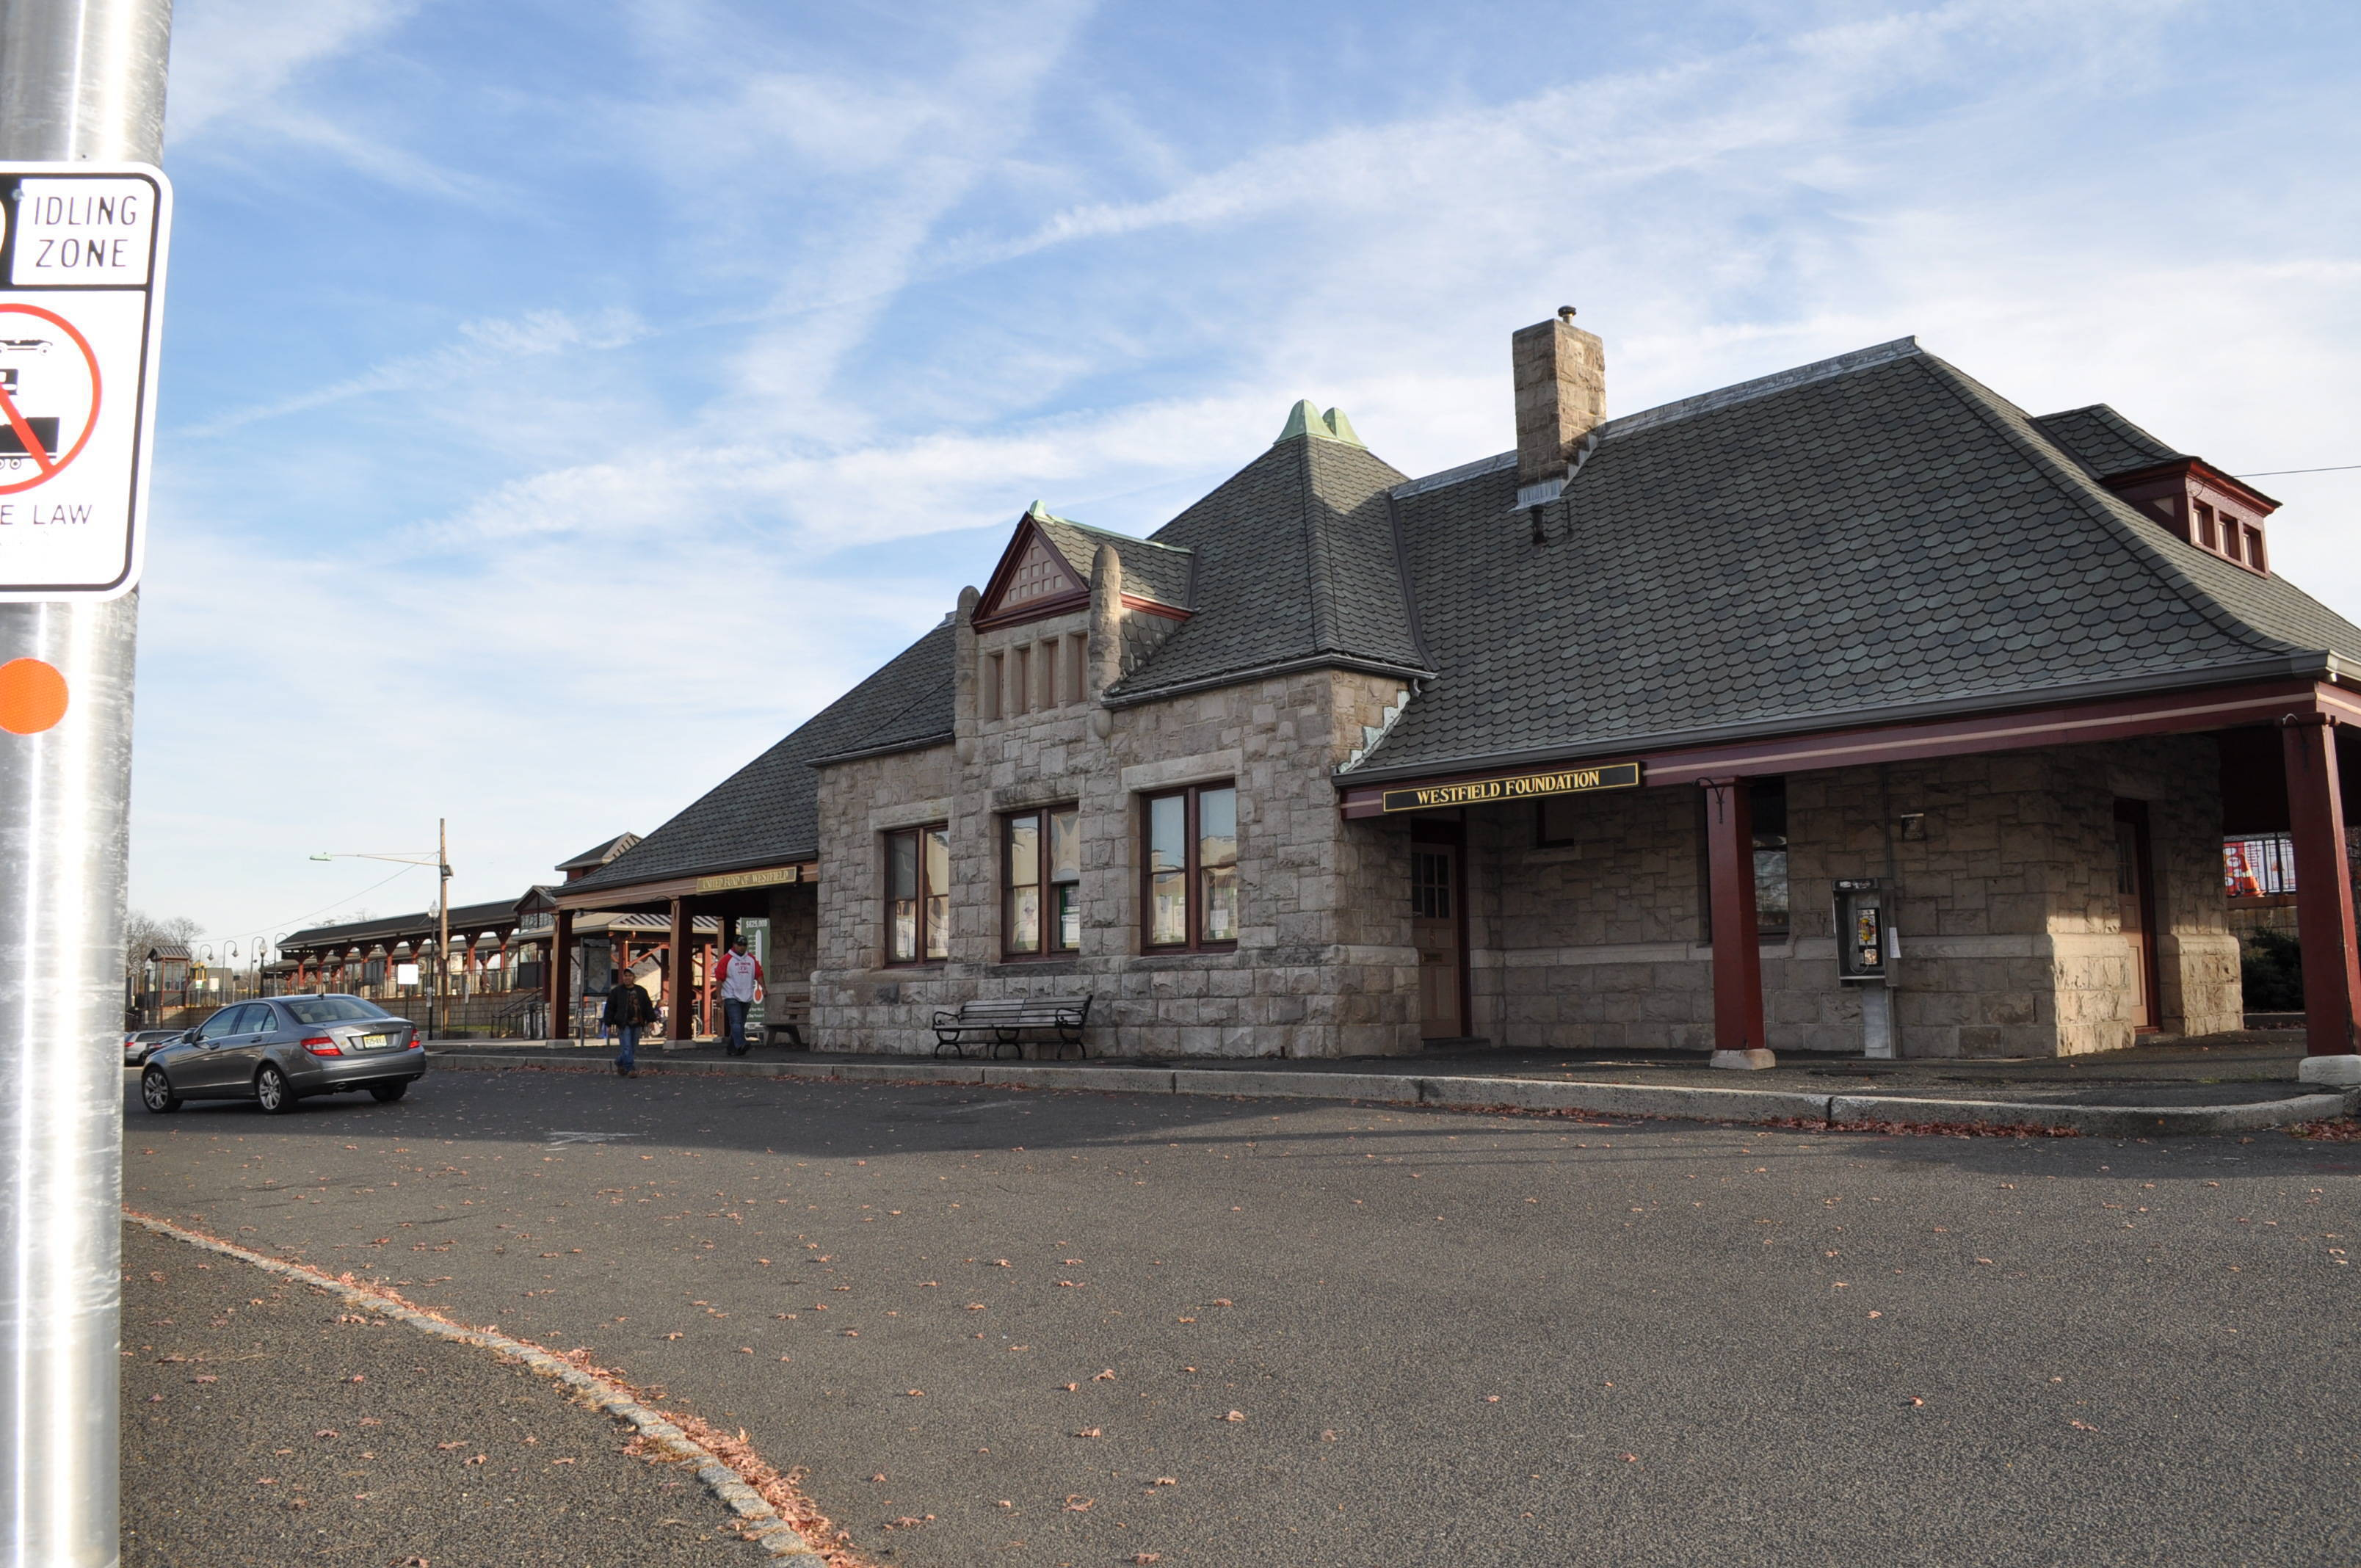 f96f73dc9e6567b0ad13_92c38d0e3d7afe479833_train_station.JPG